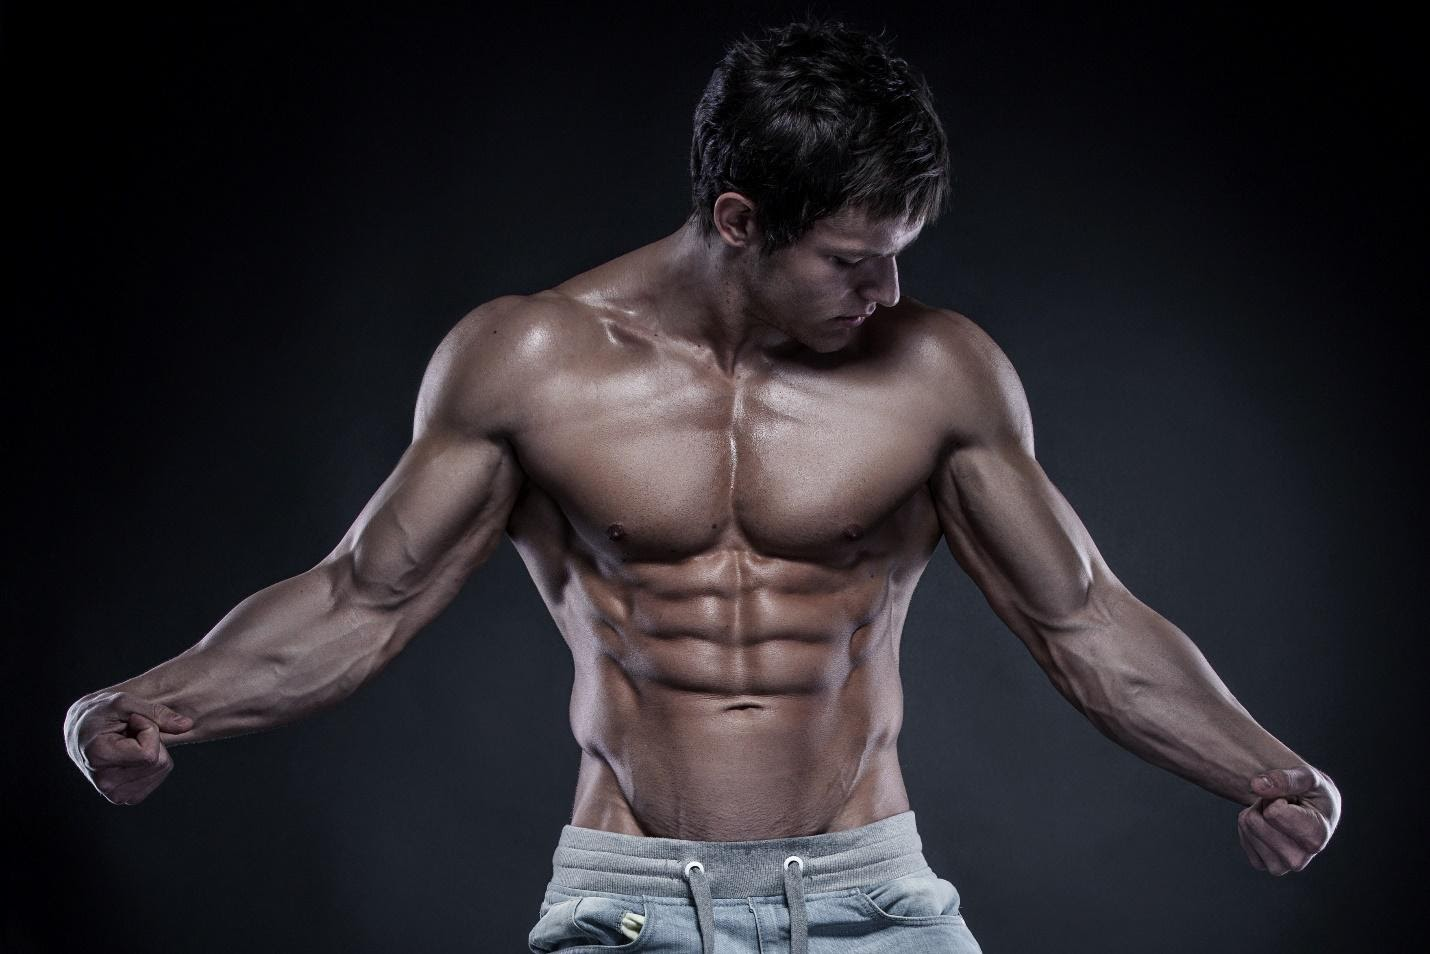 Bulking Up Tips - Muscle Building Steroids